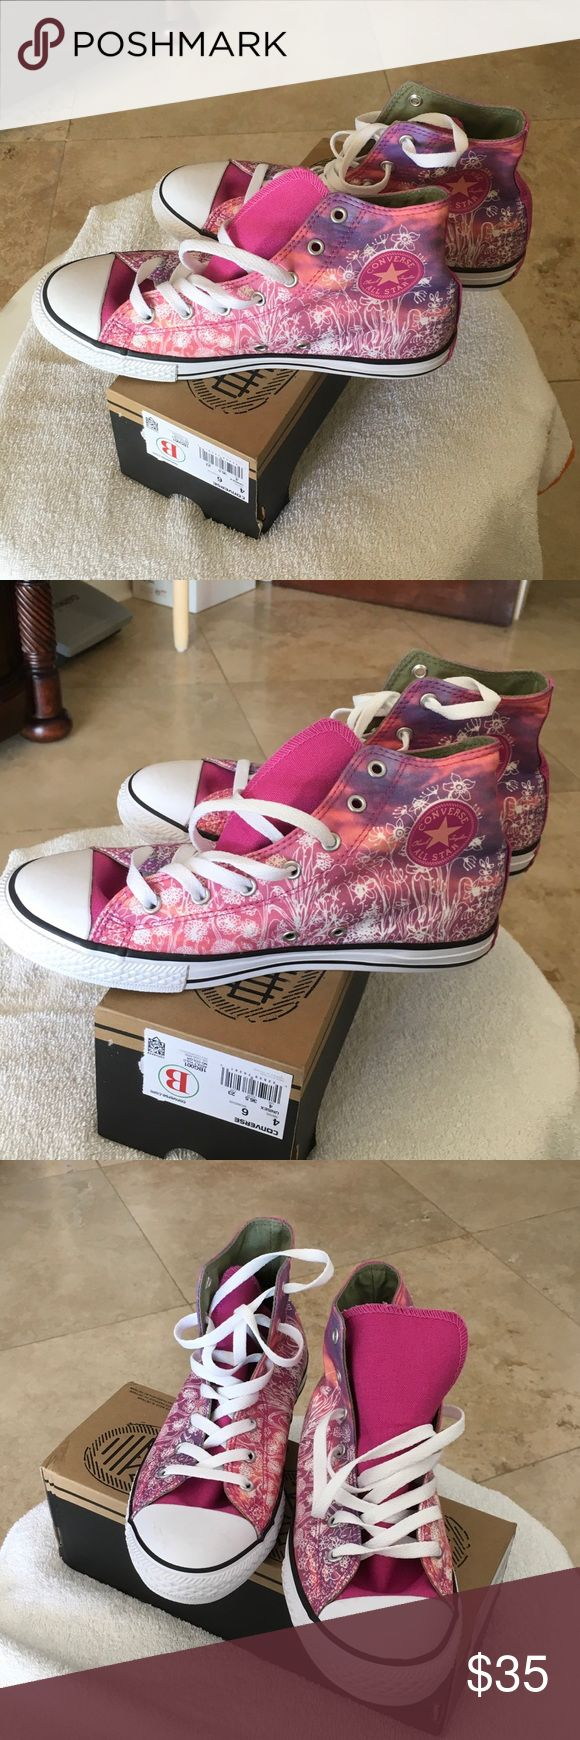 Woman converse Woman high top converse. Super cute with different shades of pink and flower 🌺 print. Converse Shoes Sneakers